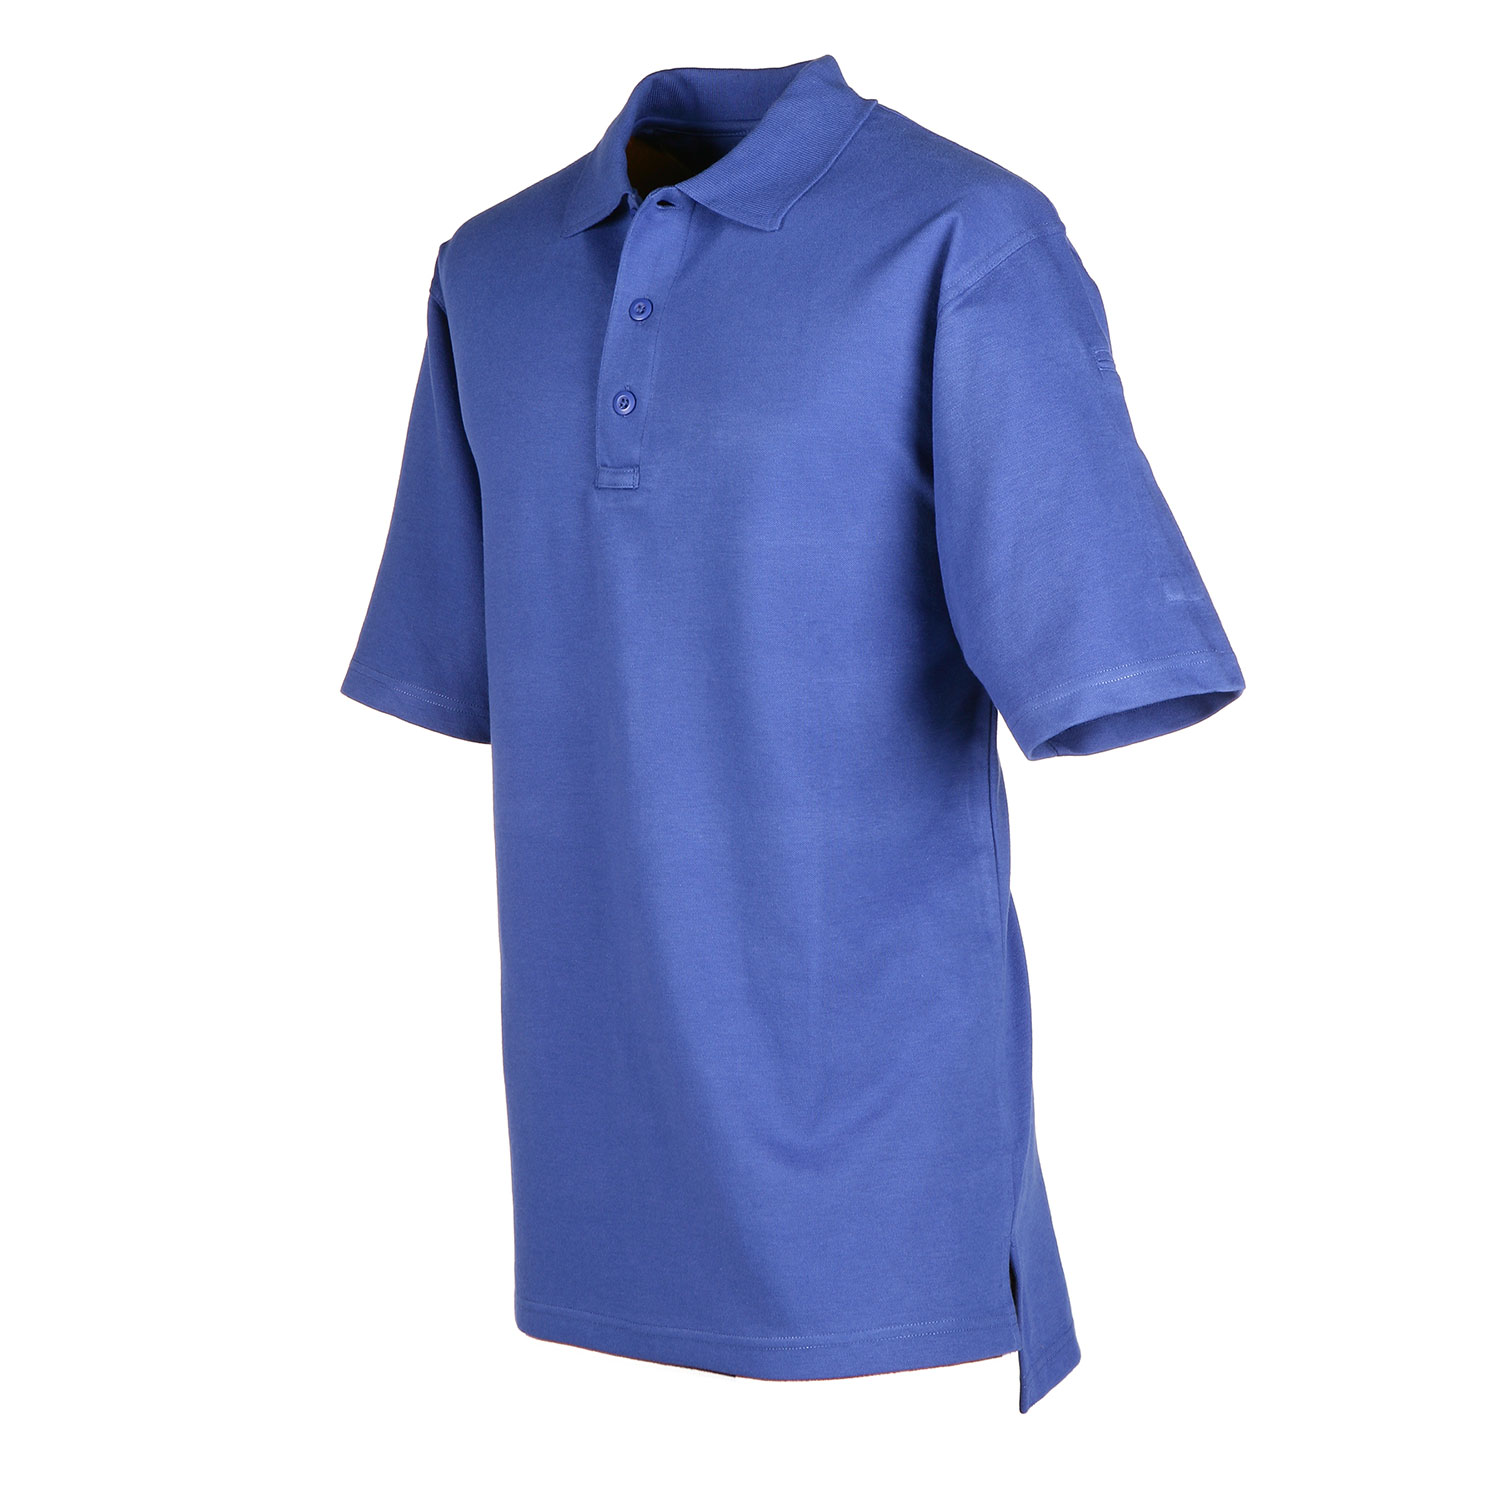 Tru-Spec 24-7 Short Sleeve Polo